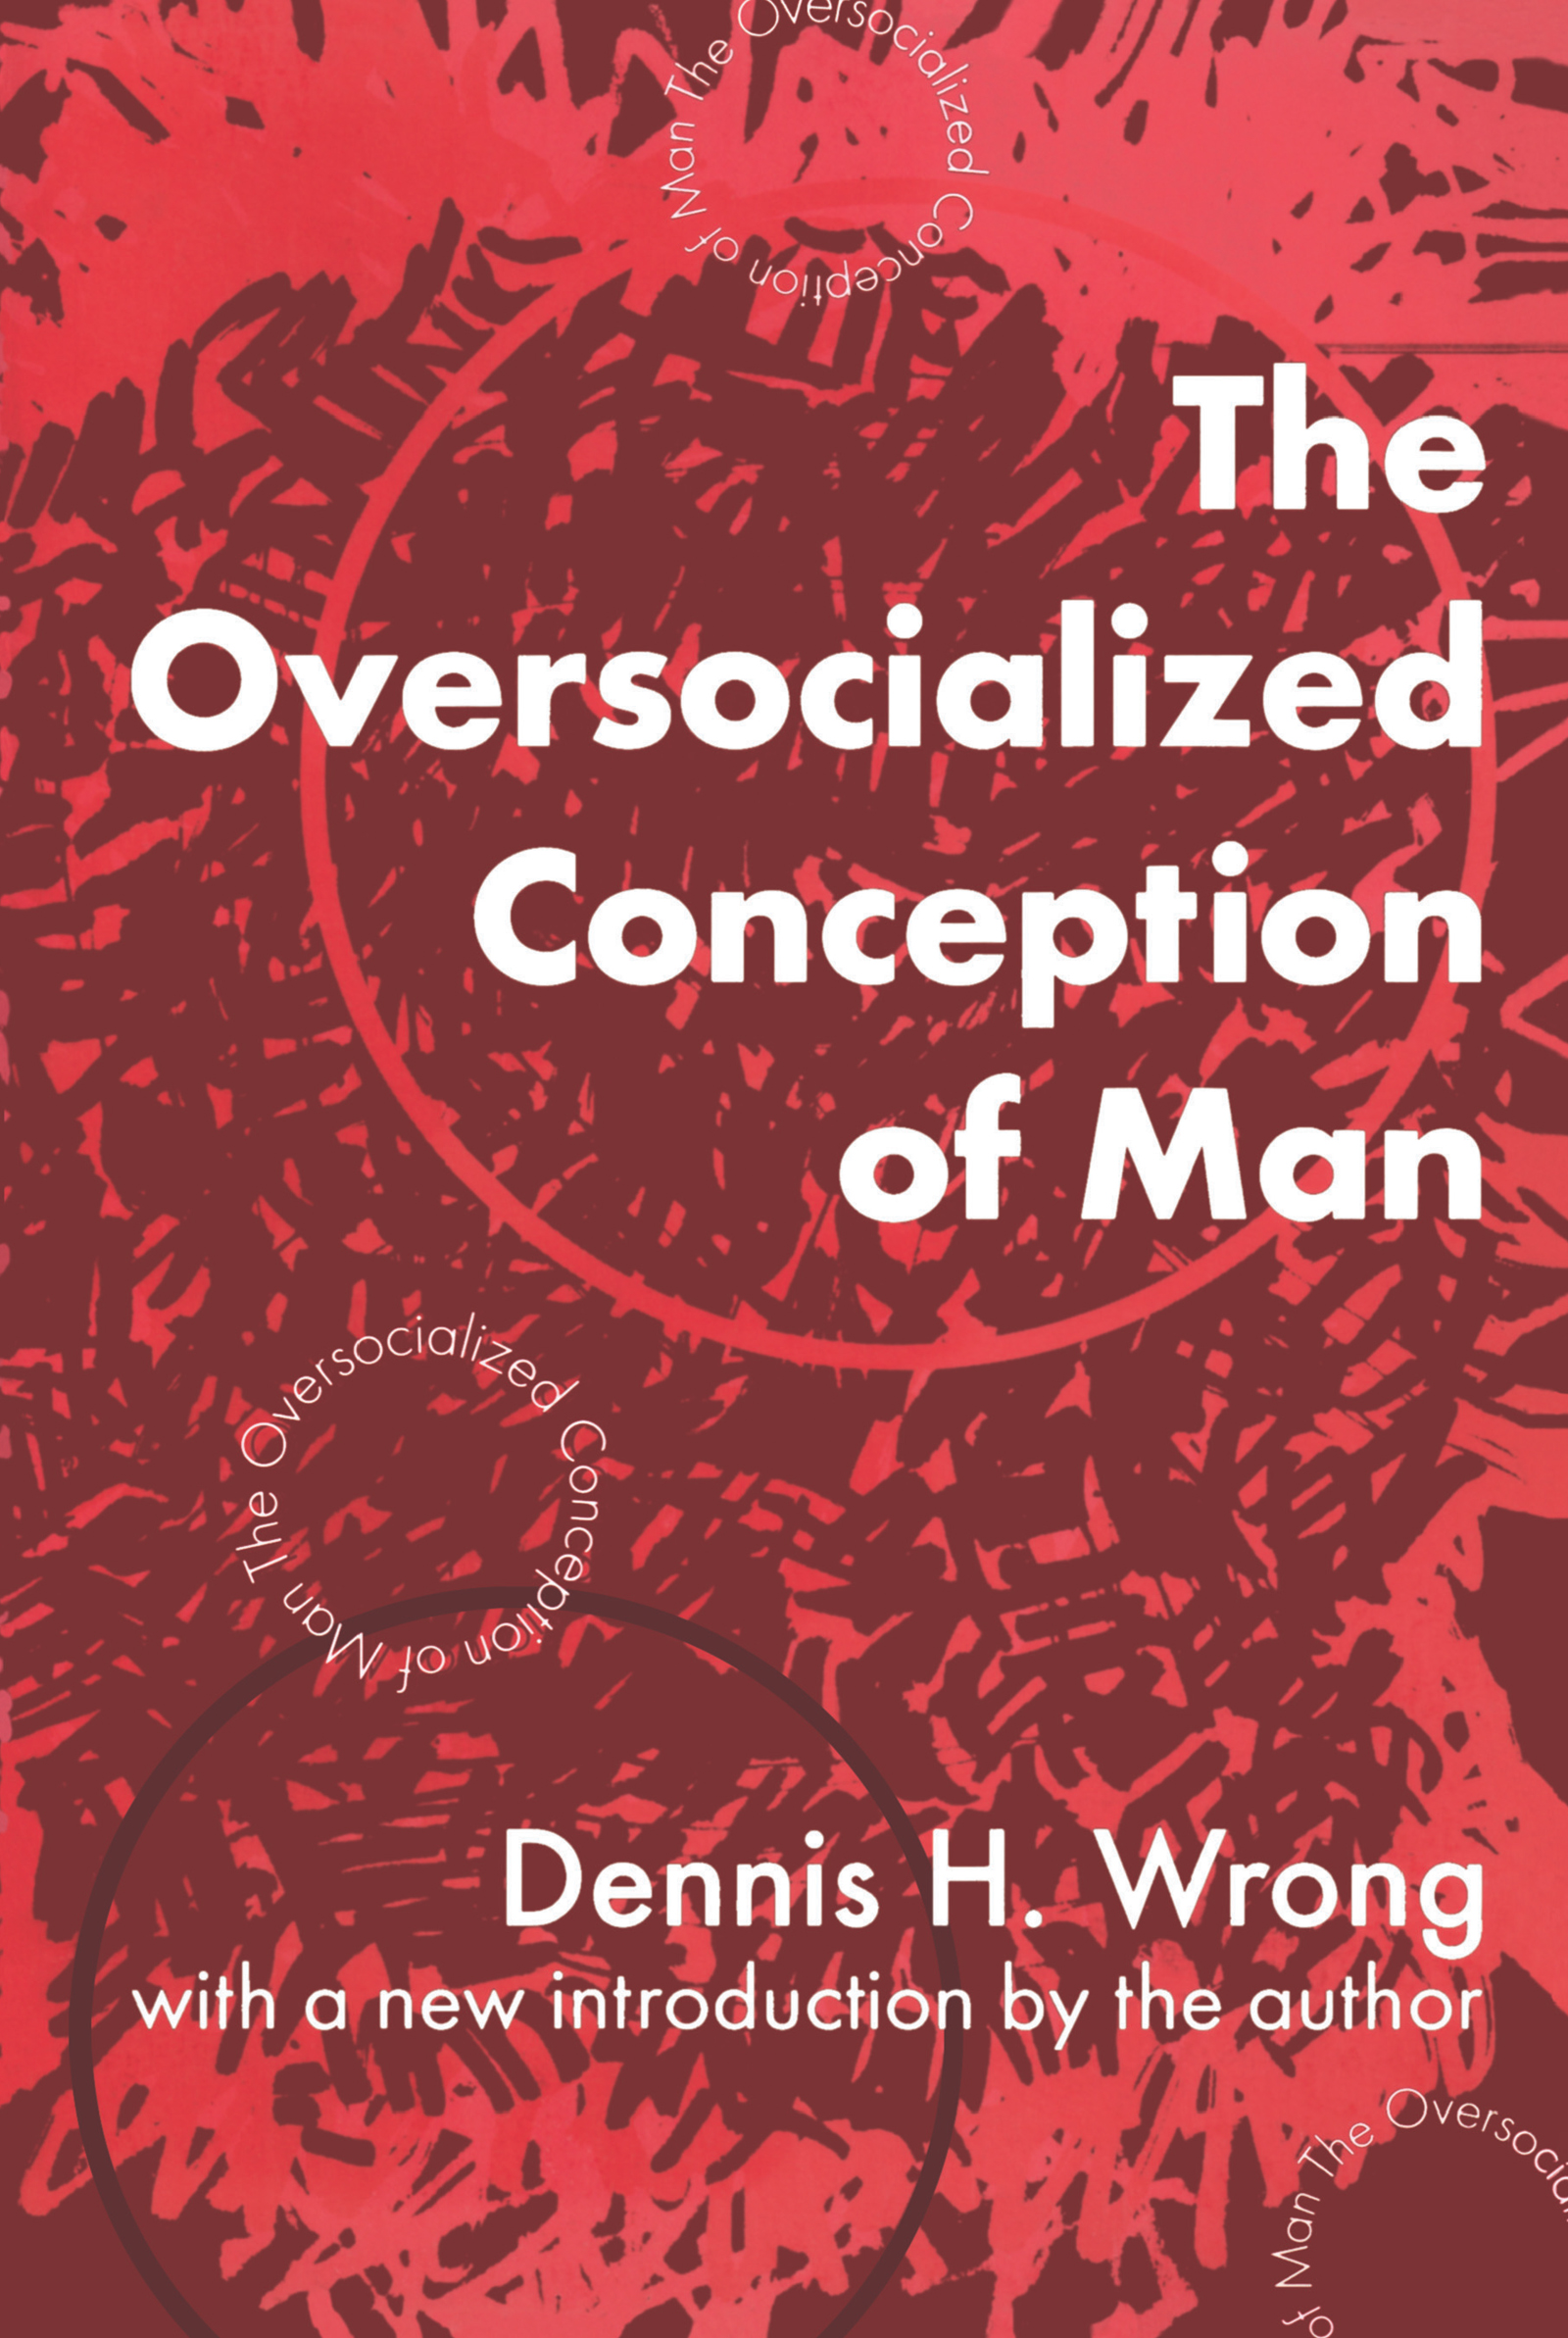 The Oversocialized Conception of Man